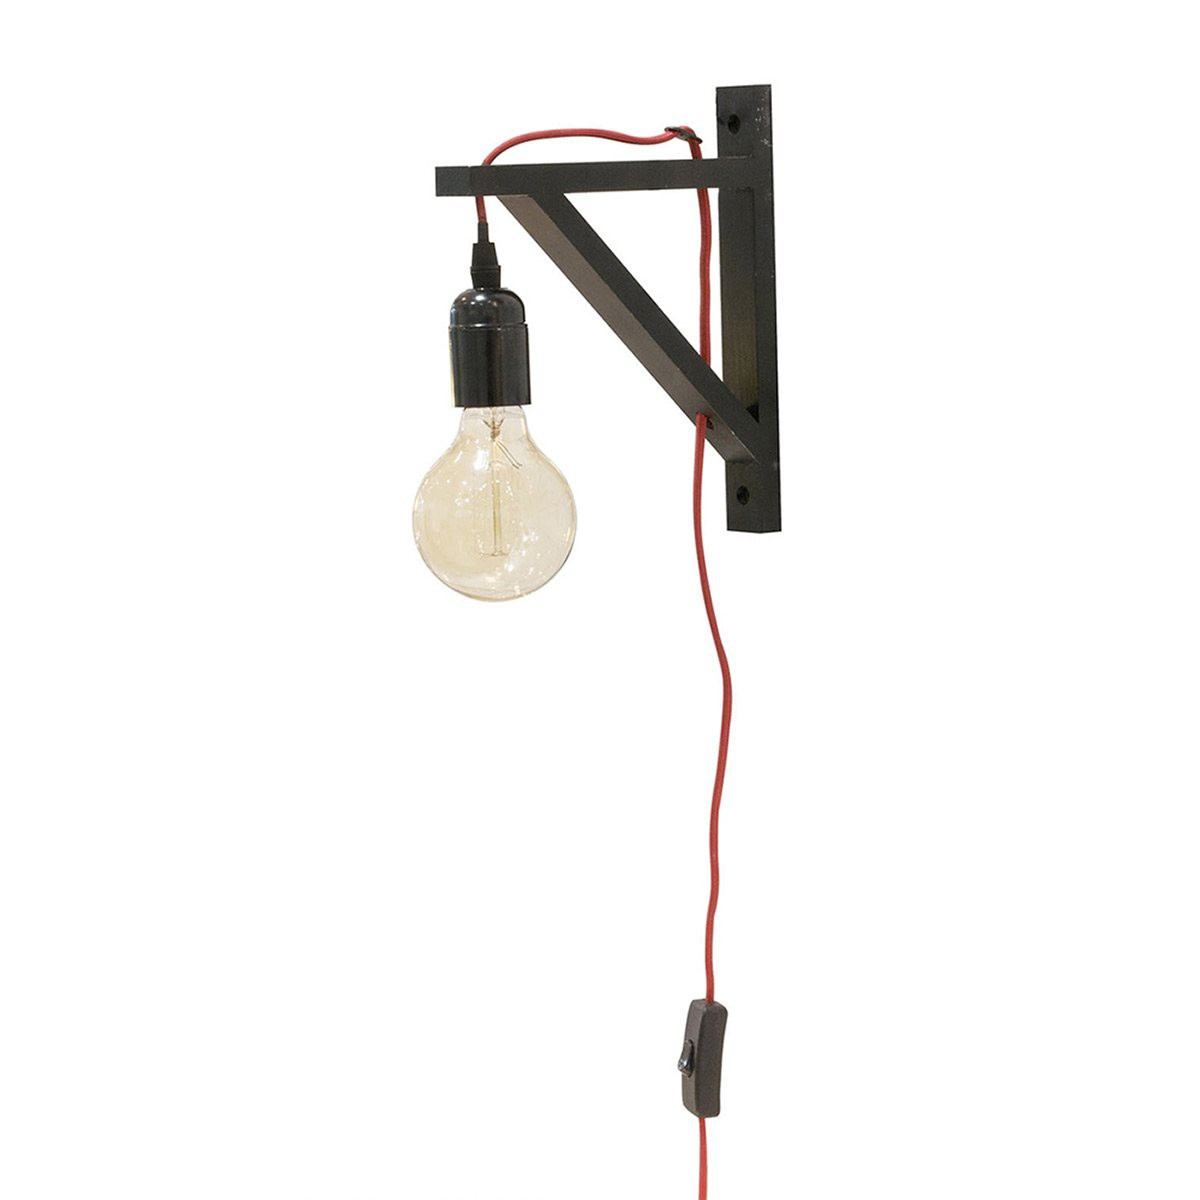 Lampe Murale Suspension Noire Câble Rouge Decoratiefr